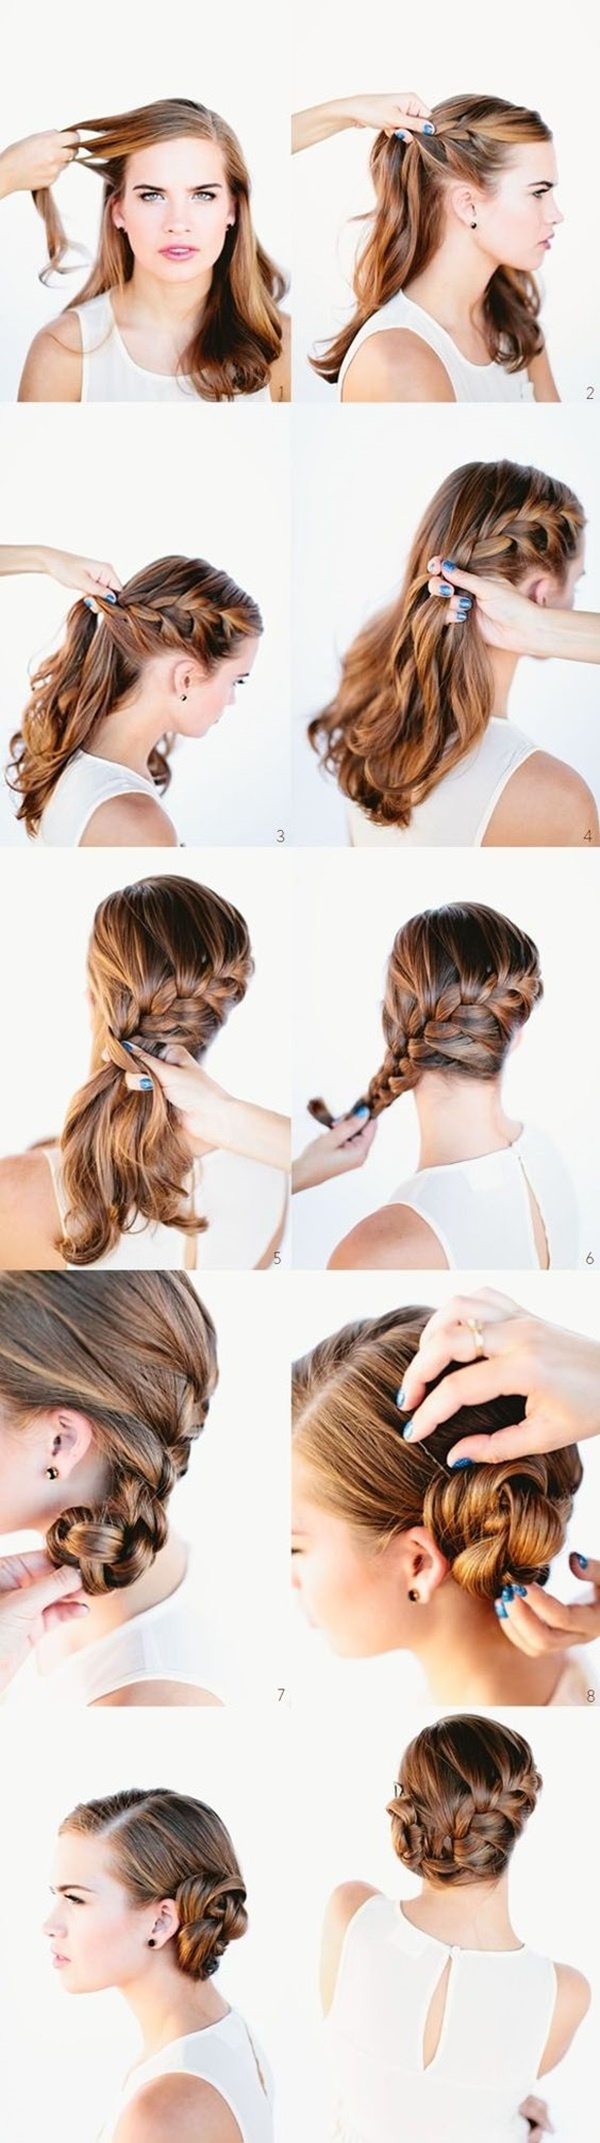 Easy-Step-By-Step-Hairstyles-For-Girls2.1-1